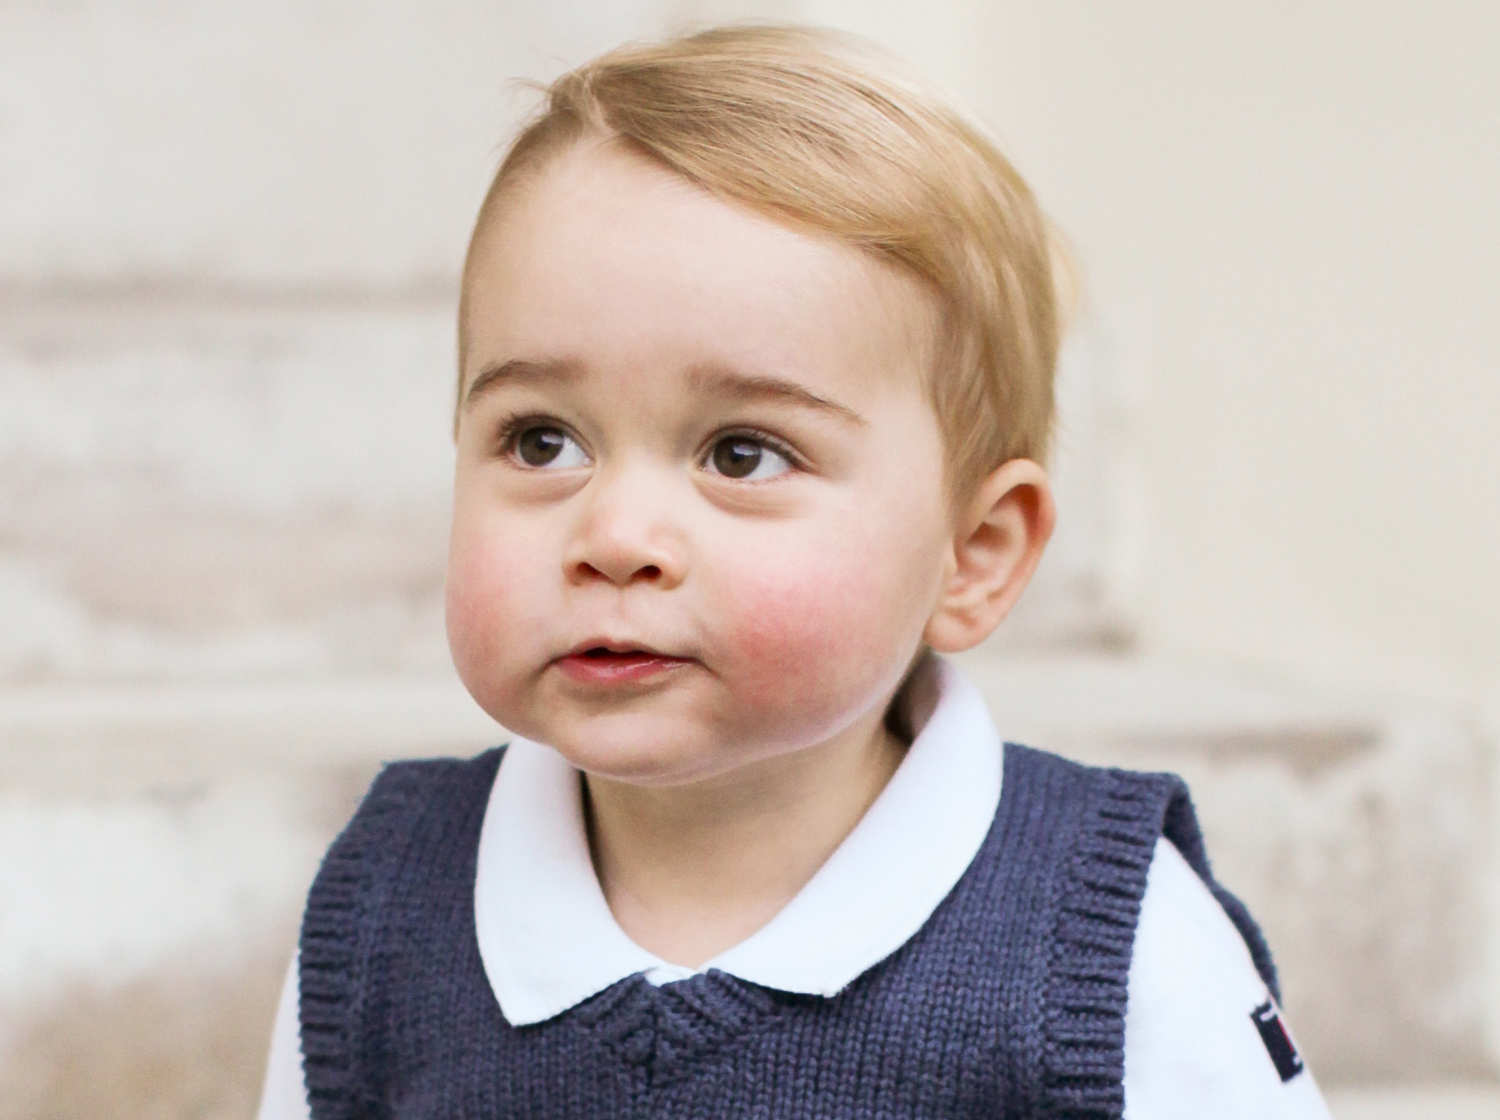 Prince George and Princess Charlotte - Perfect Portraits of Royal Babies 14